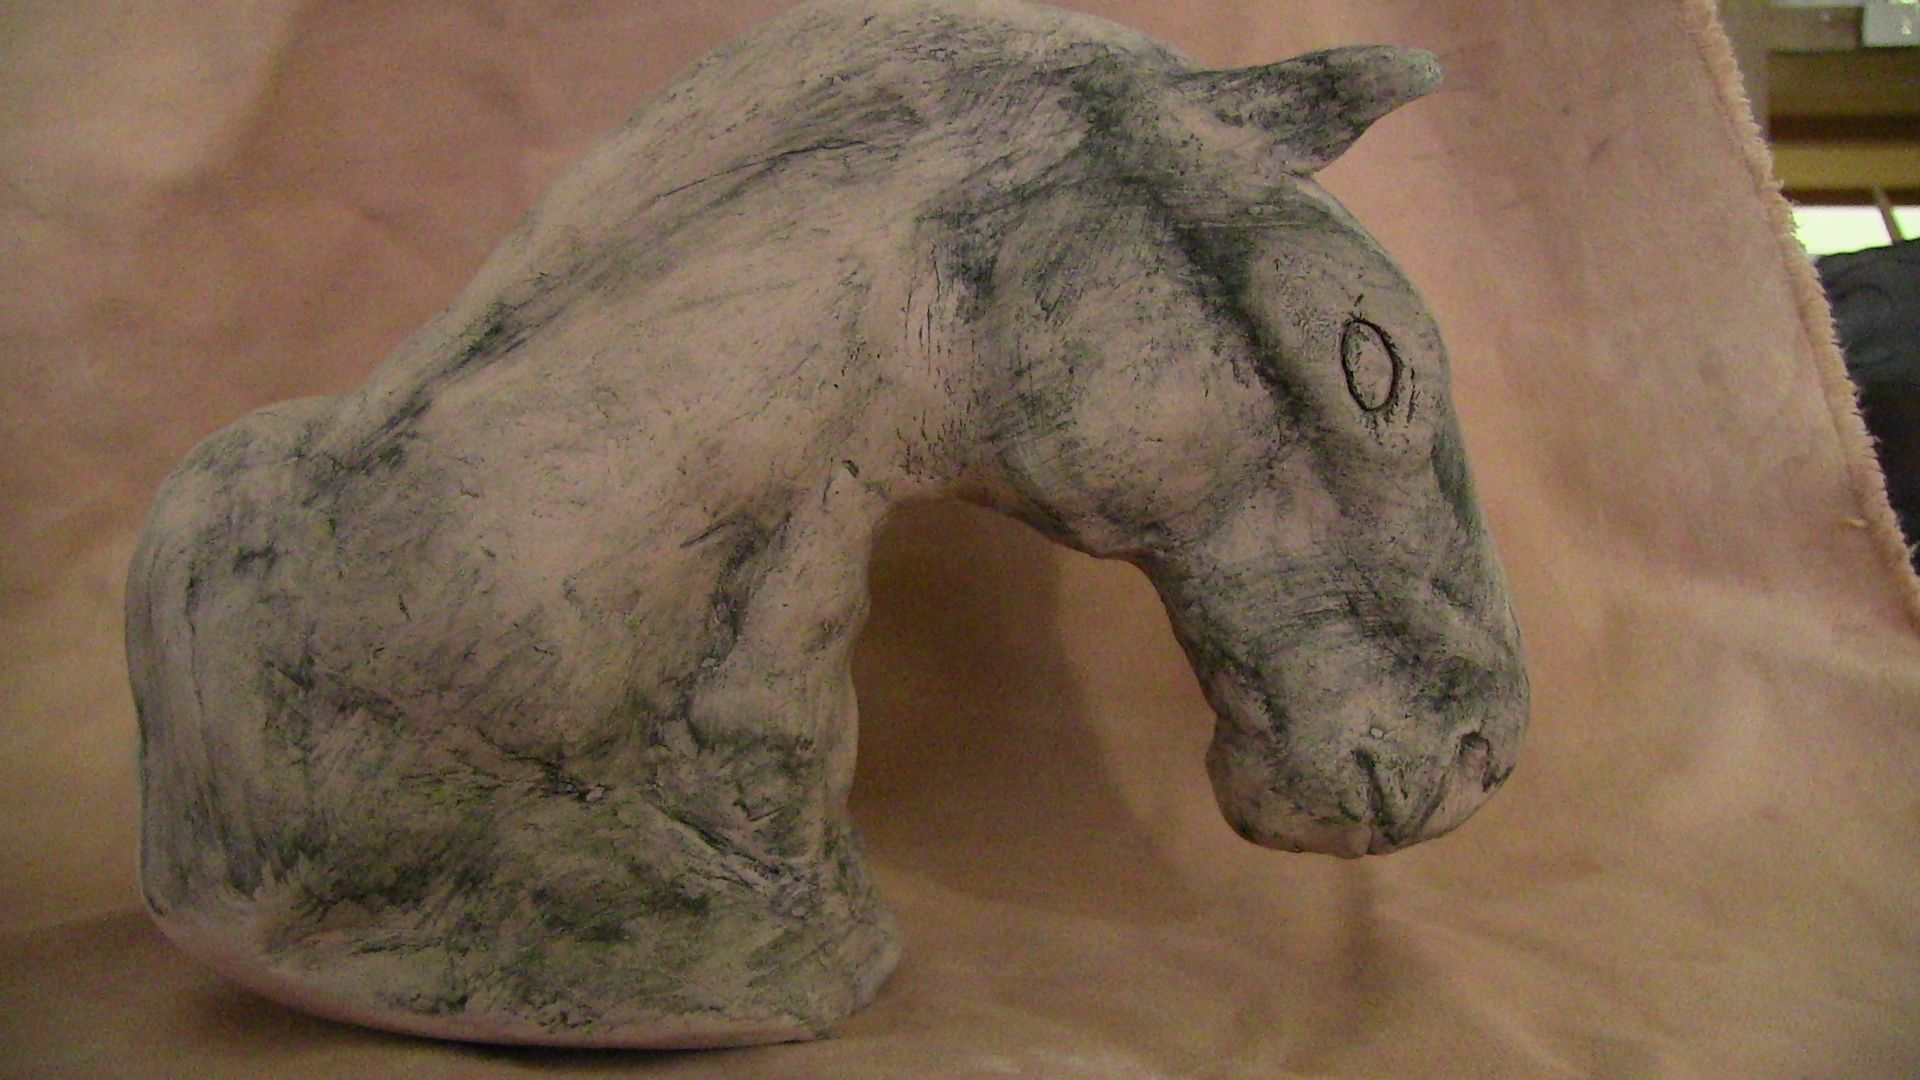 Animal sculpture (horse head). I used the black stain for this and coated very lightly. Since I tried to make this to resemble some ancient sculptures of horses (with mine in mind) I went for a worn down look to make it look older. When I was doing it I was thinking that things dont ware evenly so I should not apply evenly but I think I went a bit too far in that direction and could have applied the stain a bit more evenly. other than that I got what I expected.